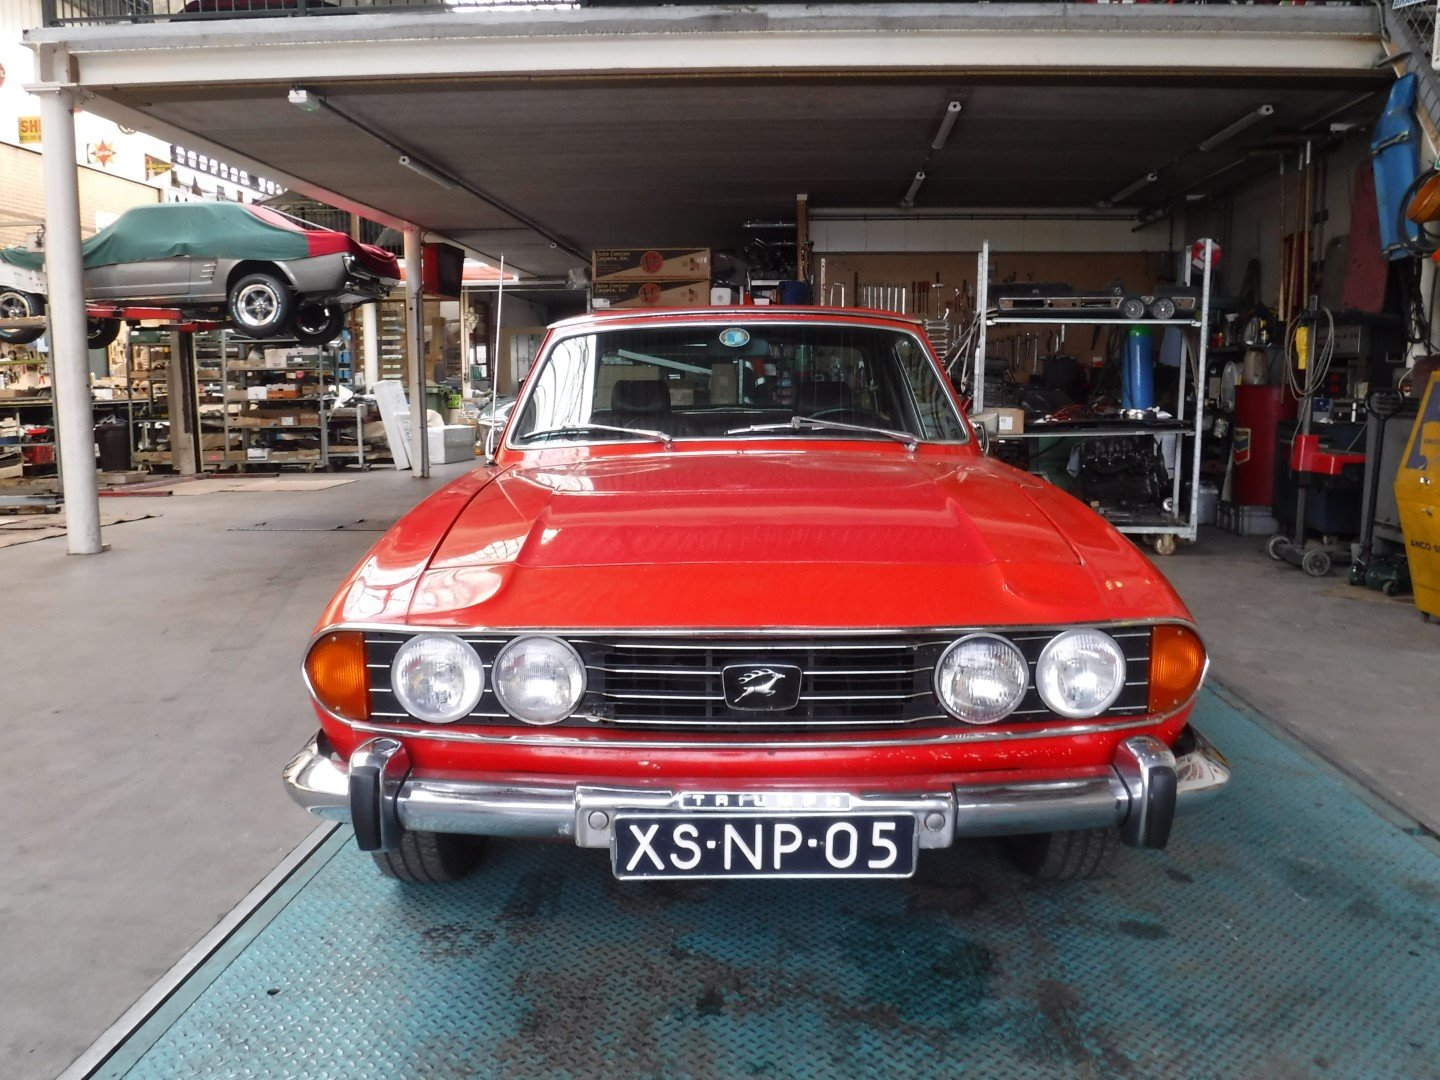 Triumh Stag V8 1973 For Sale (picture 2 of 6)